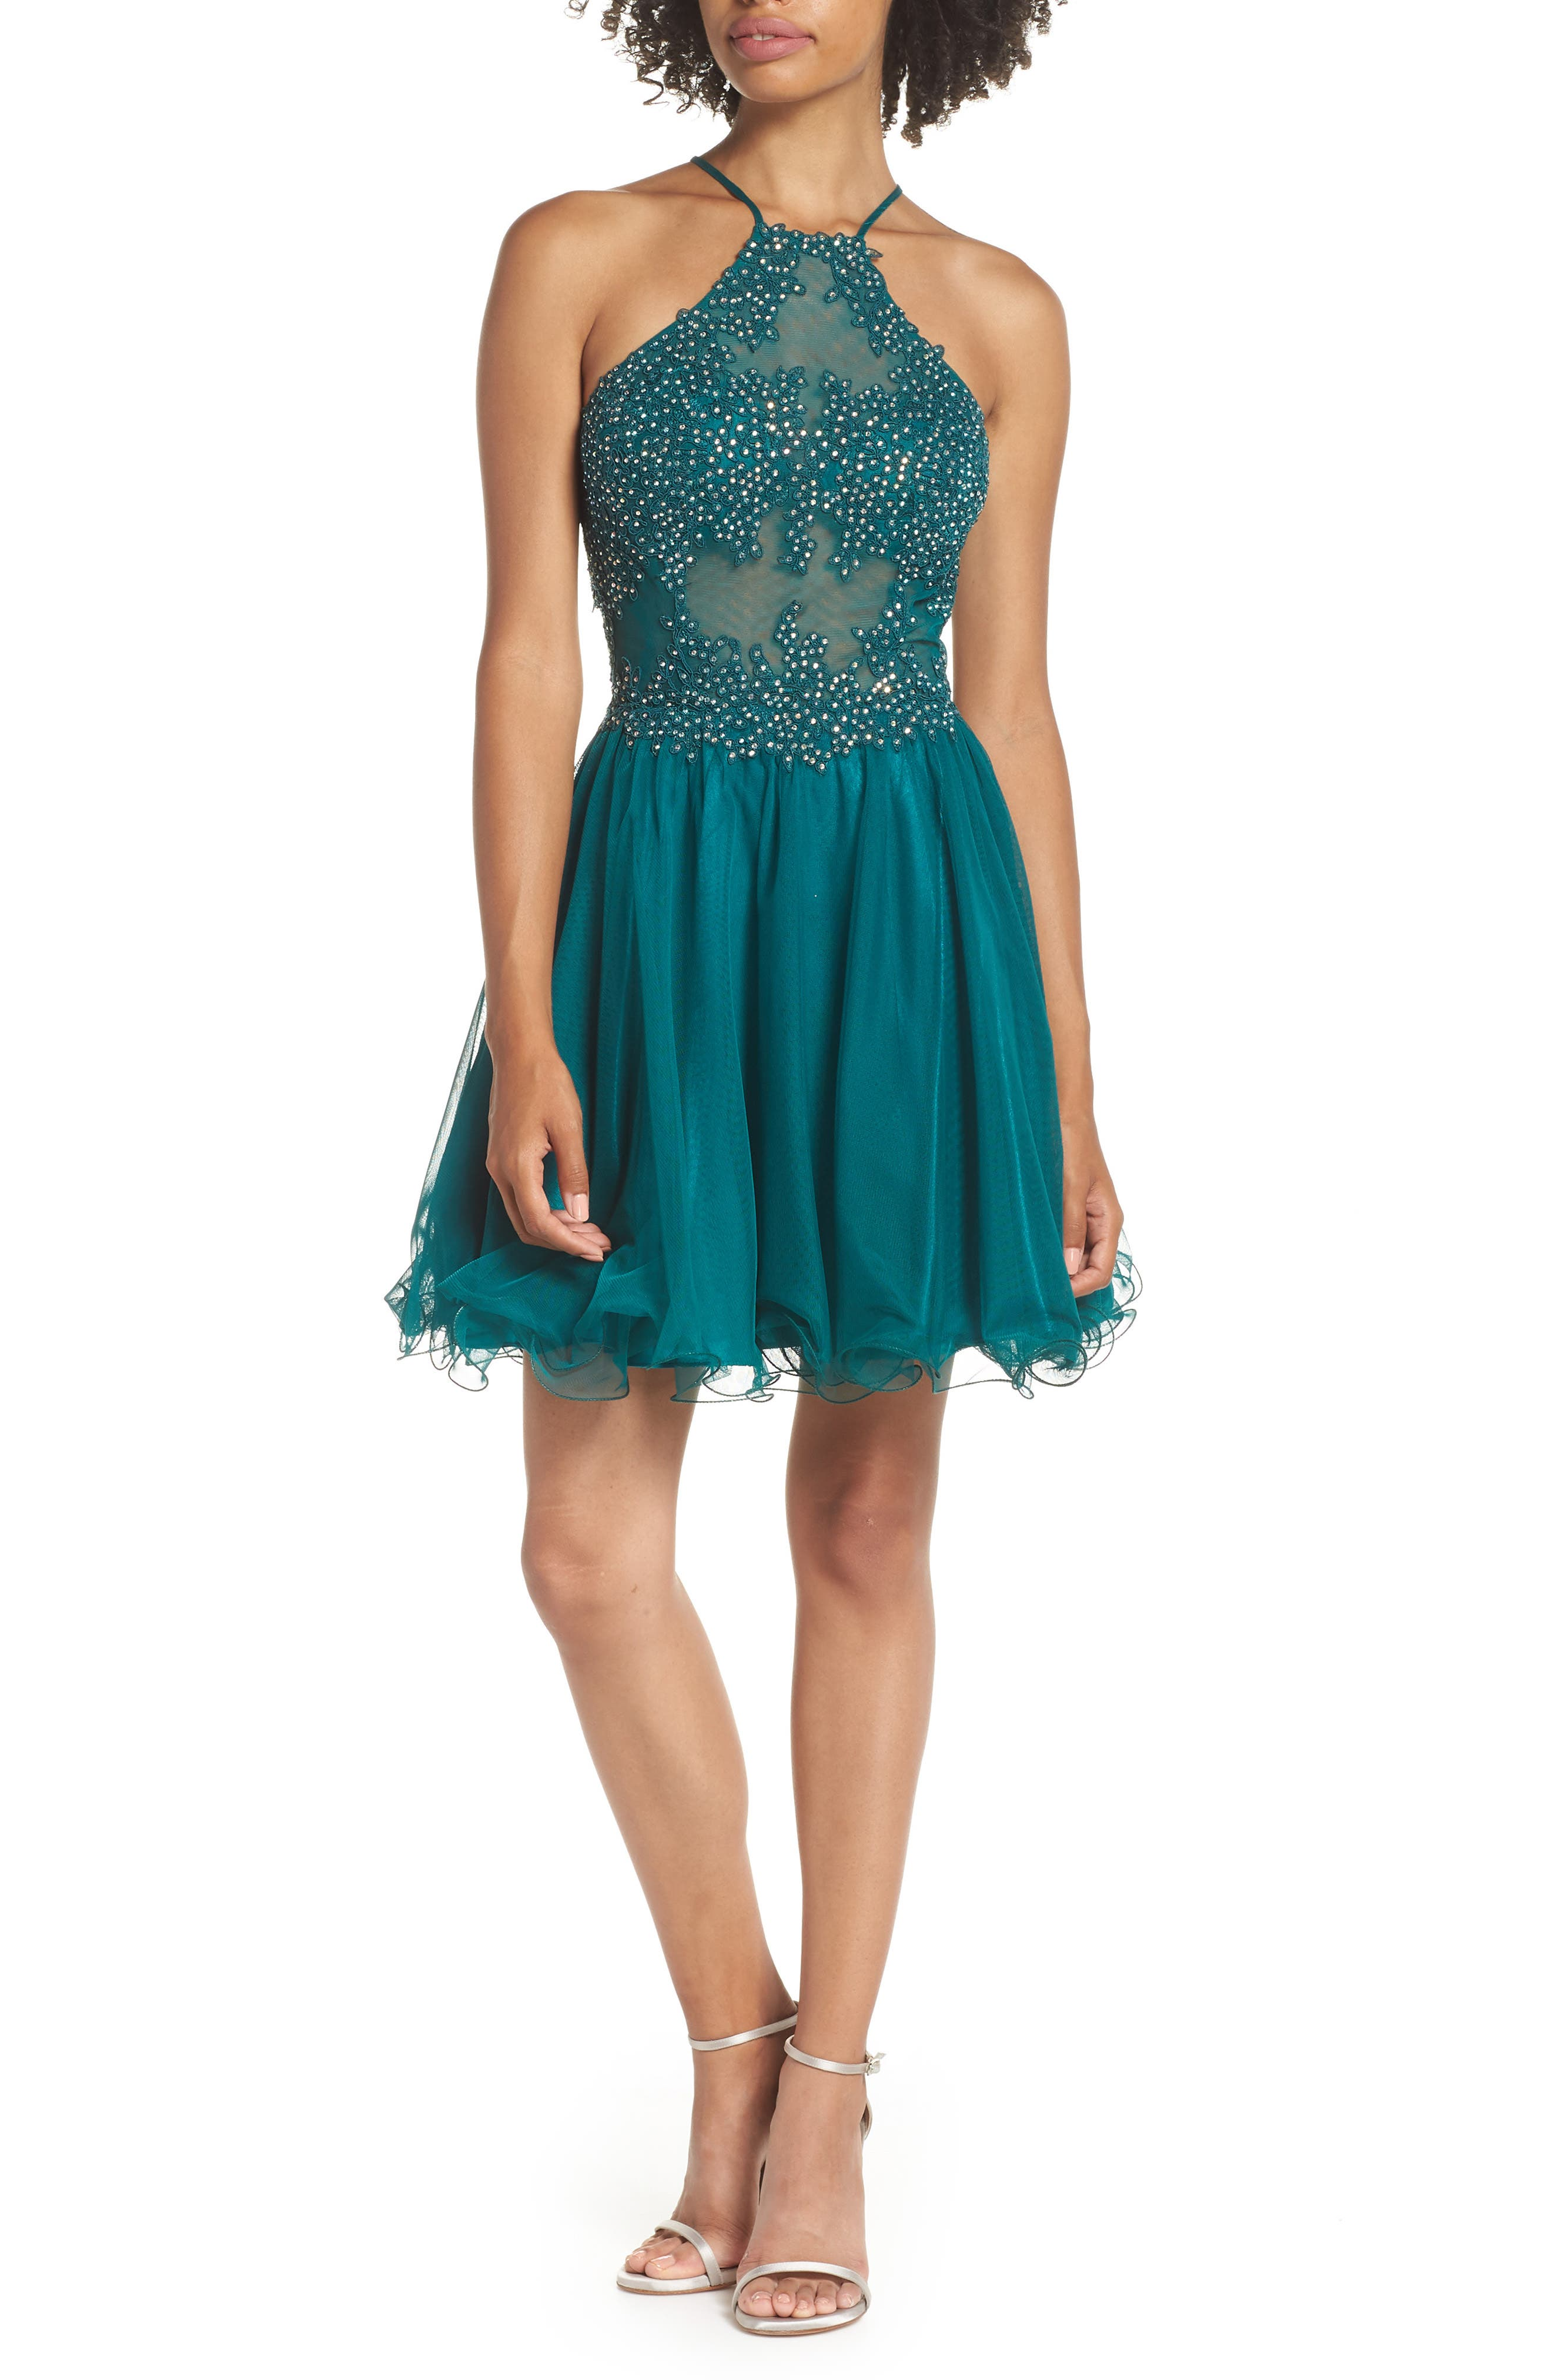 Blondie Nites Halter Neck Applique Mesh Party Dress, Green